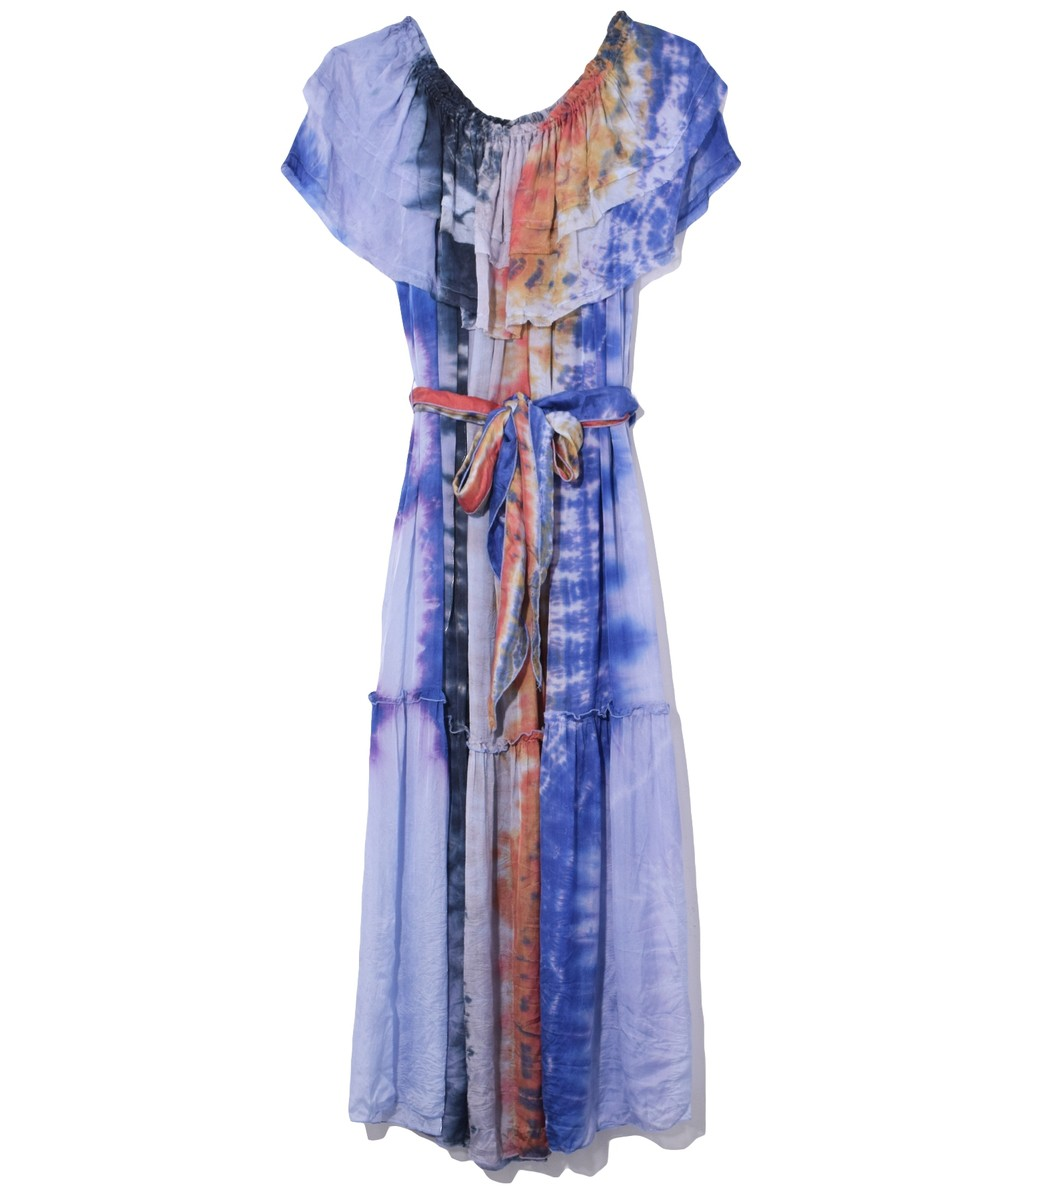 2b902ed0a58 Raquel Allegra Ruffle Maxi Dress In Waterfall Rainbow Tie Dye In Multi